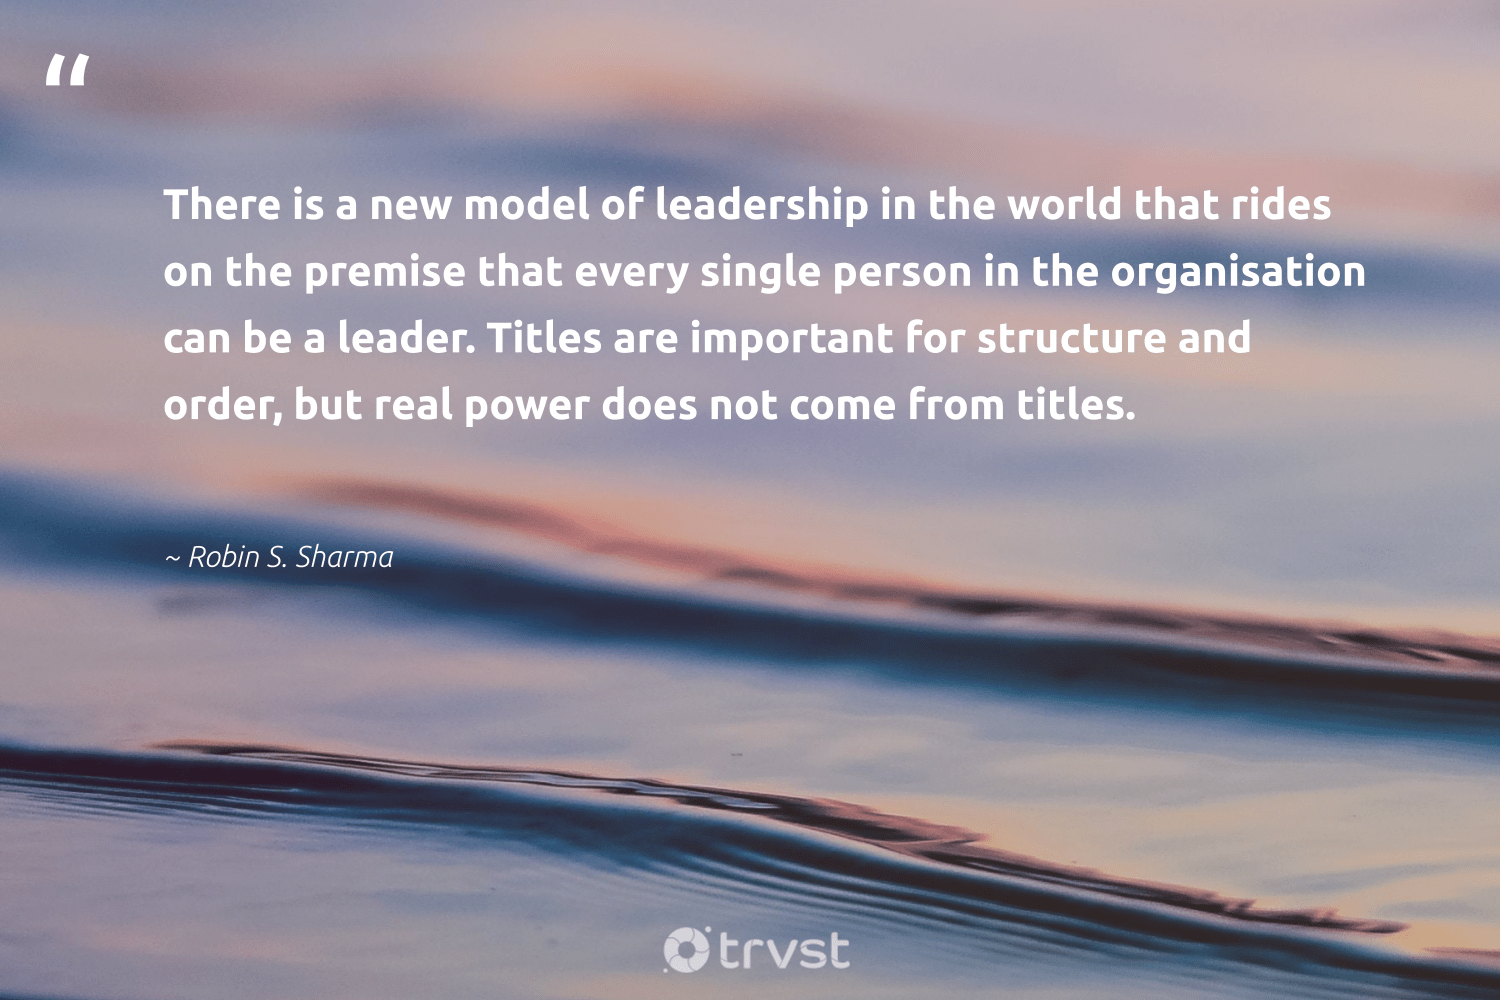 """There is a new model of leadership in the world that rides on the premise that every single person in the organisation can be a leader. Titles are important for structure and order, but real power does not come from titles.""  - Robin S. Sharma #trvst #quotes #leadership #leadershipskills #begreat #softskills #ecoconscious #leadershipdevelopment #futureofwork #nevergiveup #dotherightthing #leadershipqualities"